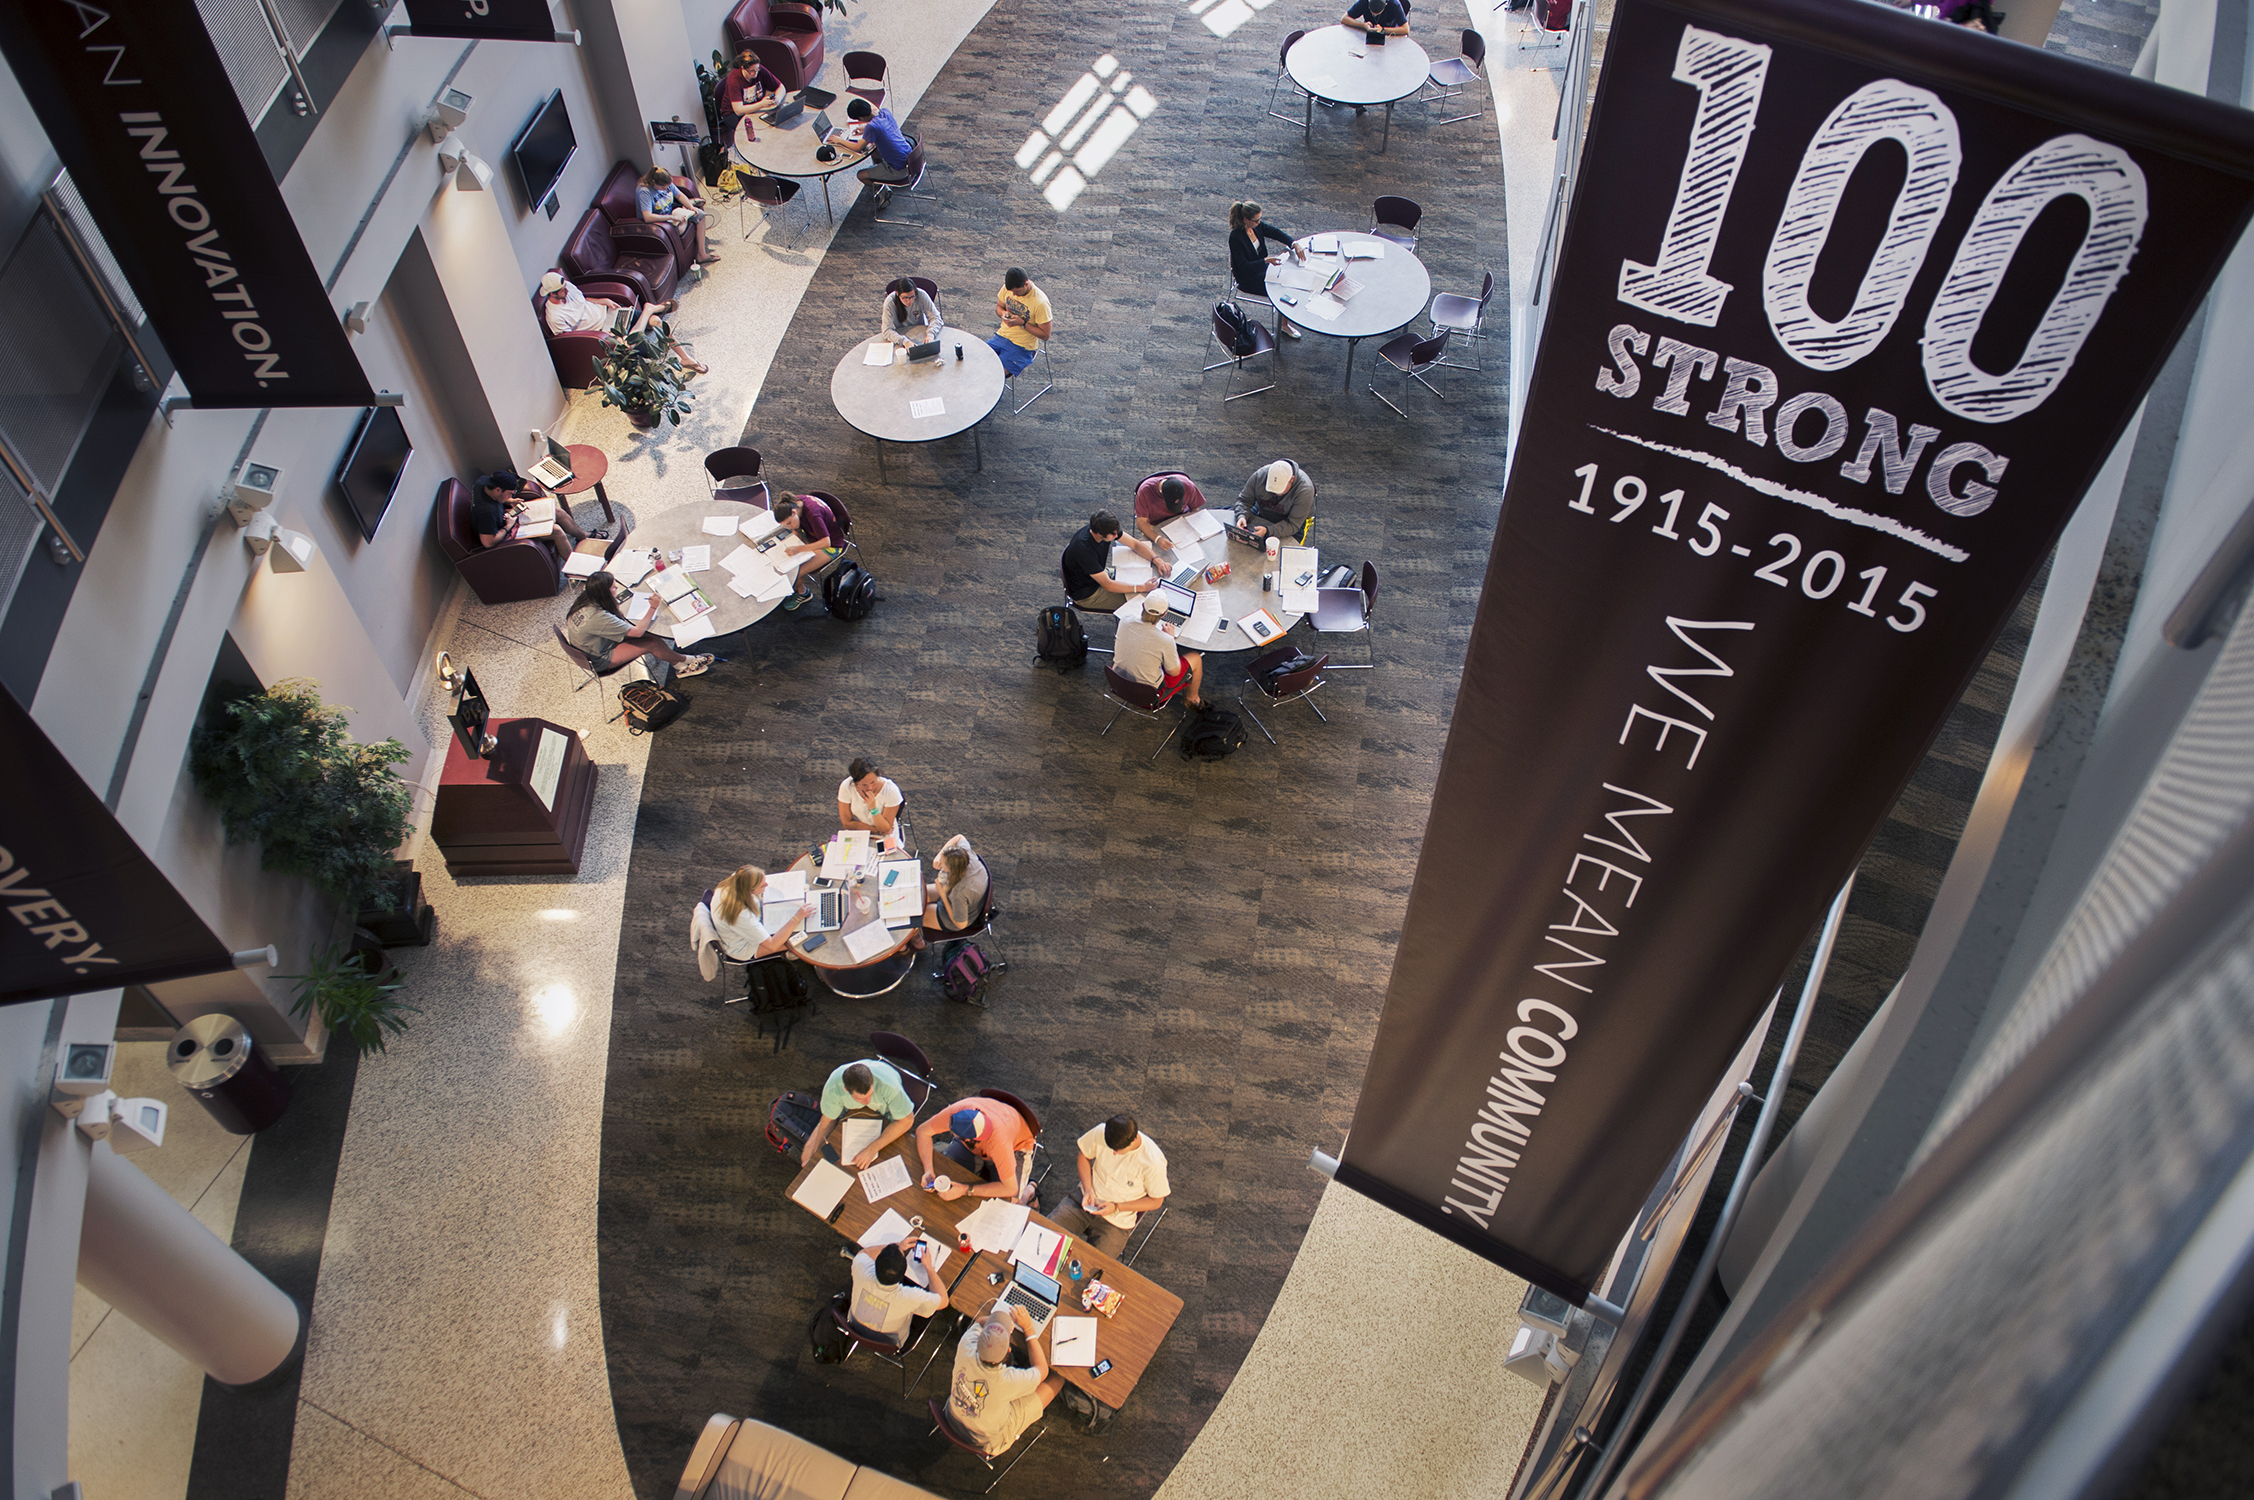 Inspirational banners in McCool Hall. (photo by Raeley Stevens / © Mississippi State University)